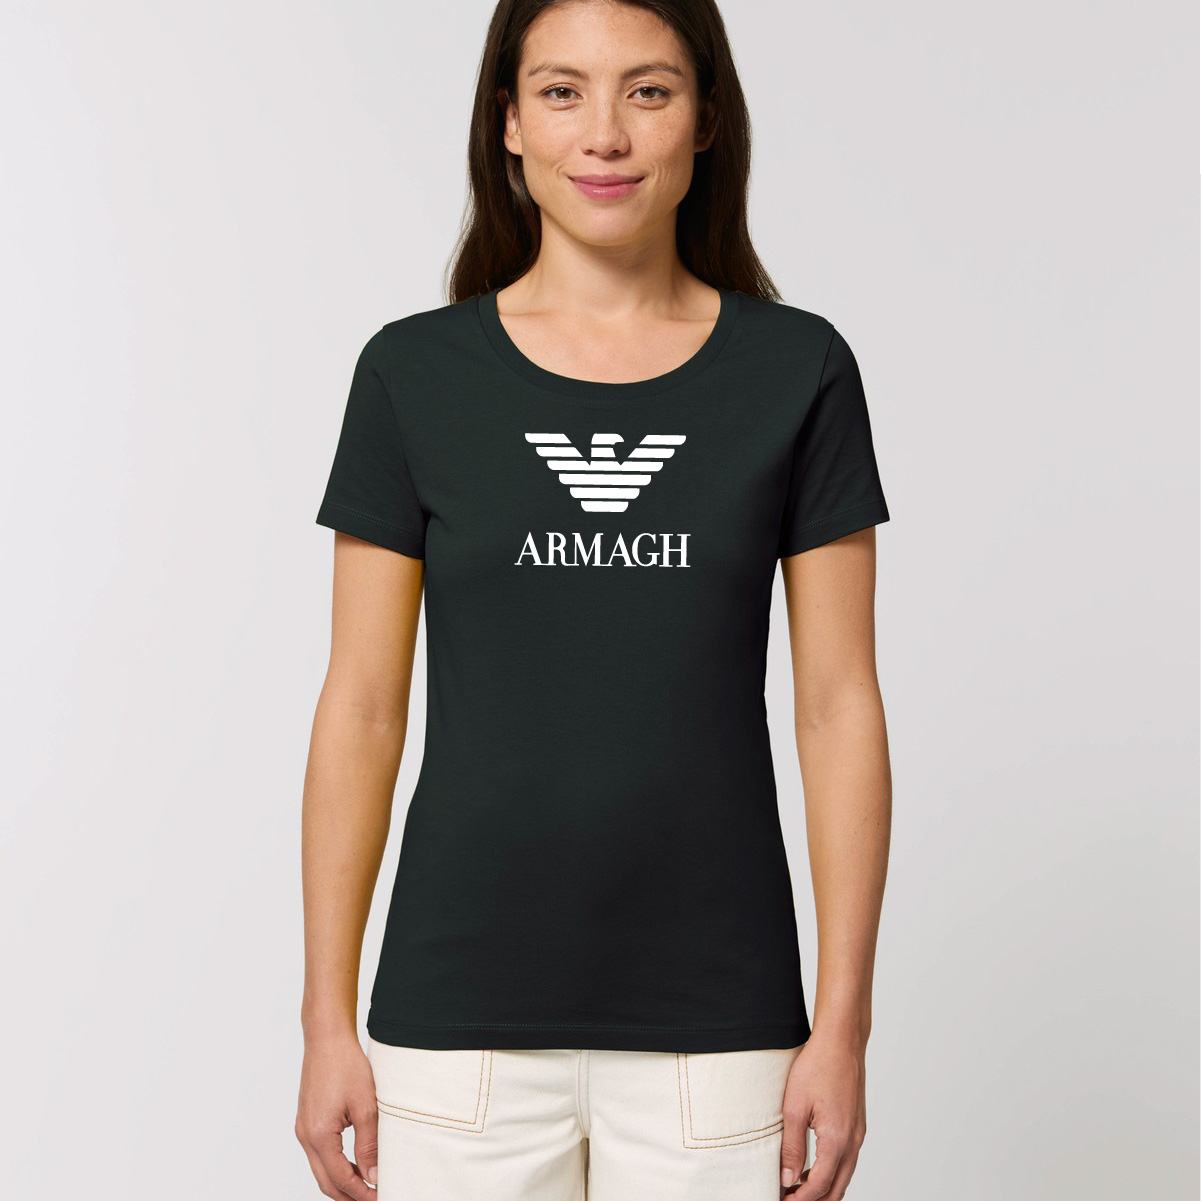 Armagh Women's fitted buyIrishonline